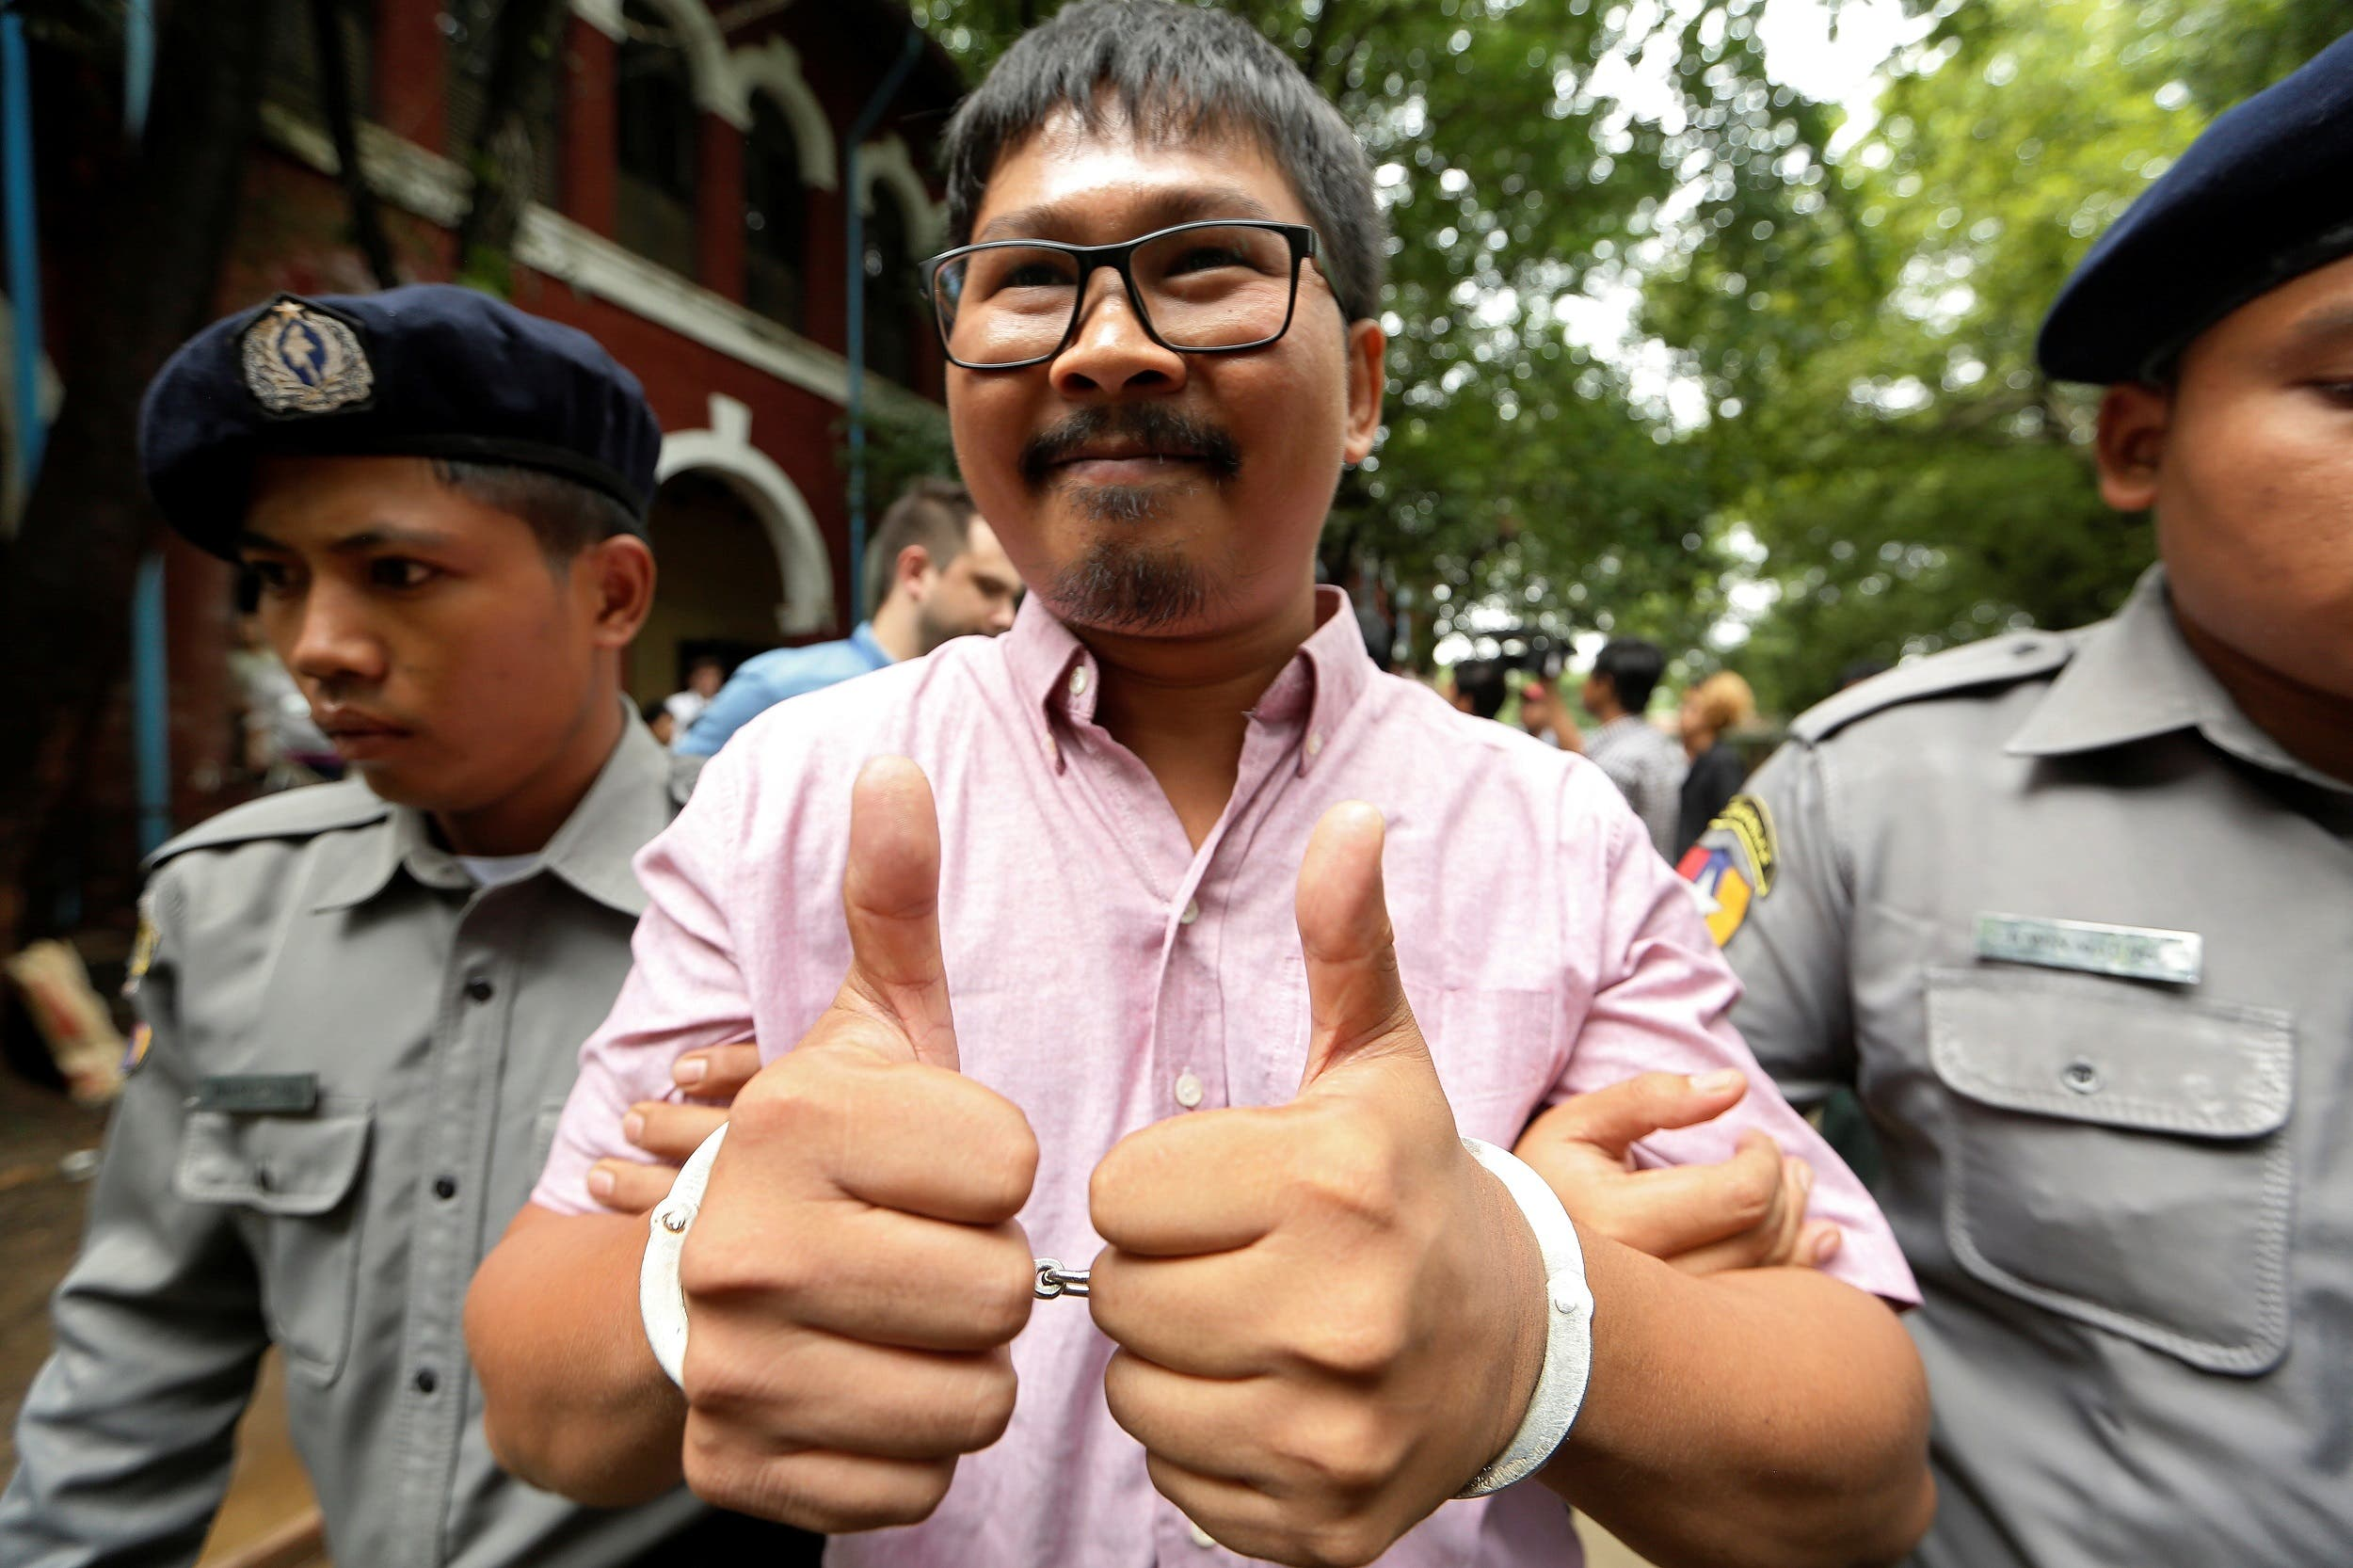 Detained Reuters journalist Wa Lone is escorted by police while leaving Insein court in Yangon, Myanmar July 2, 2018. REUTERS